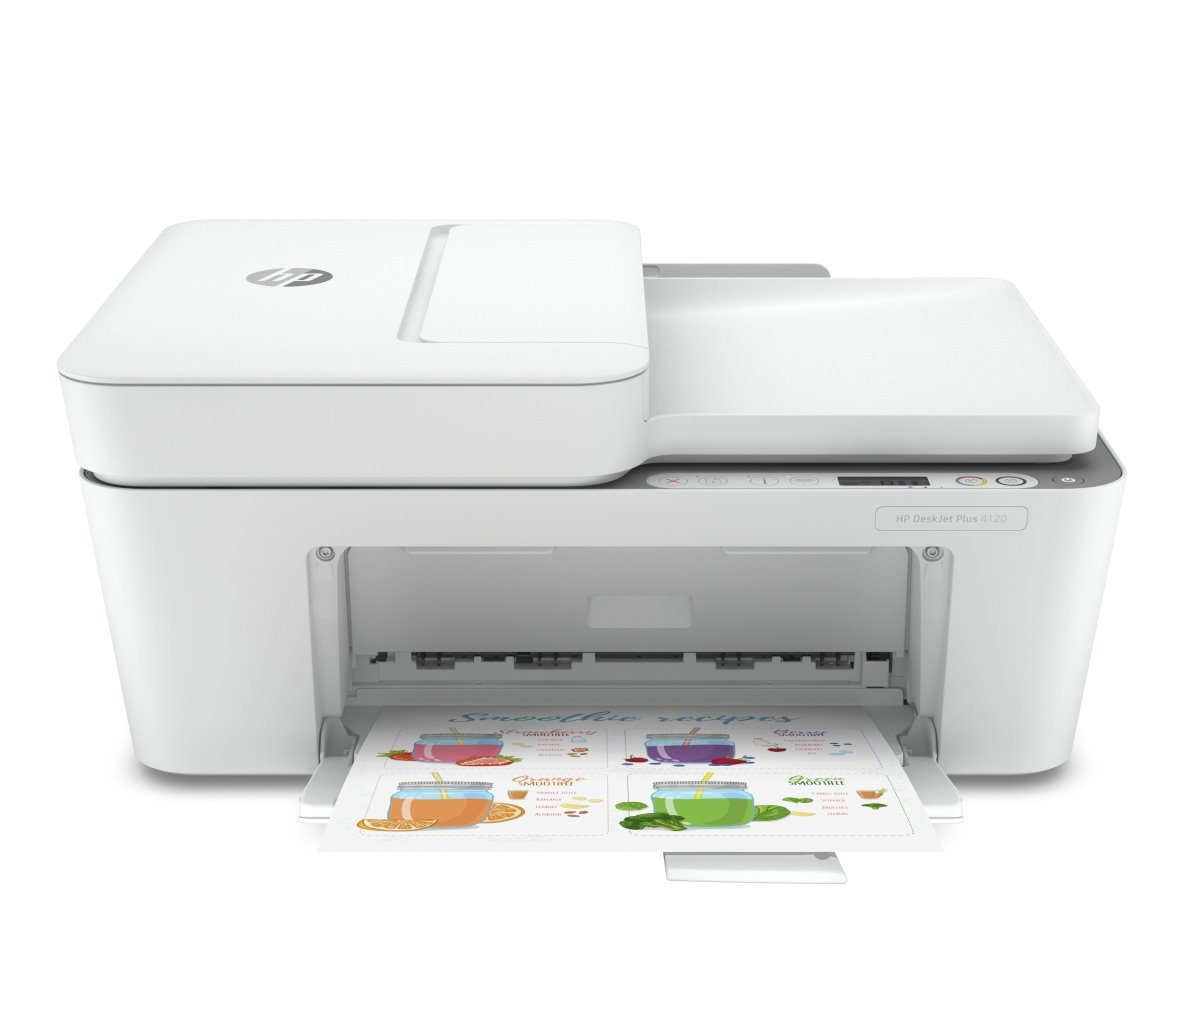 HP All-in-One Deskjet Plus 4120 (A4, 8,5/6ppm, USB, Wi-Fi, Print, Scan, Copy, ADF)